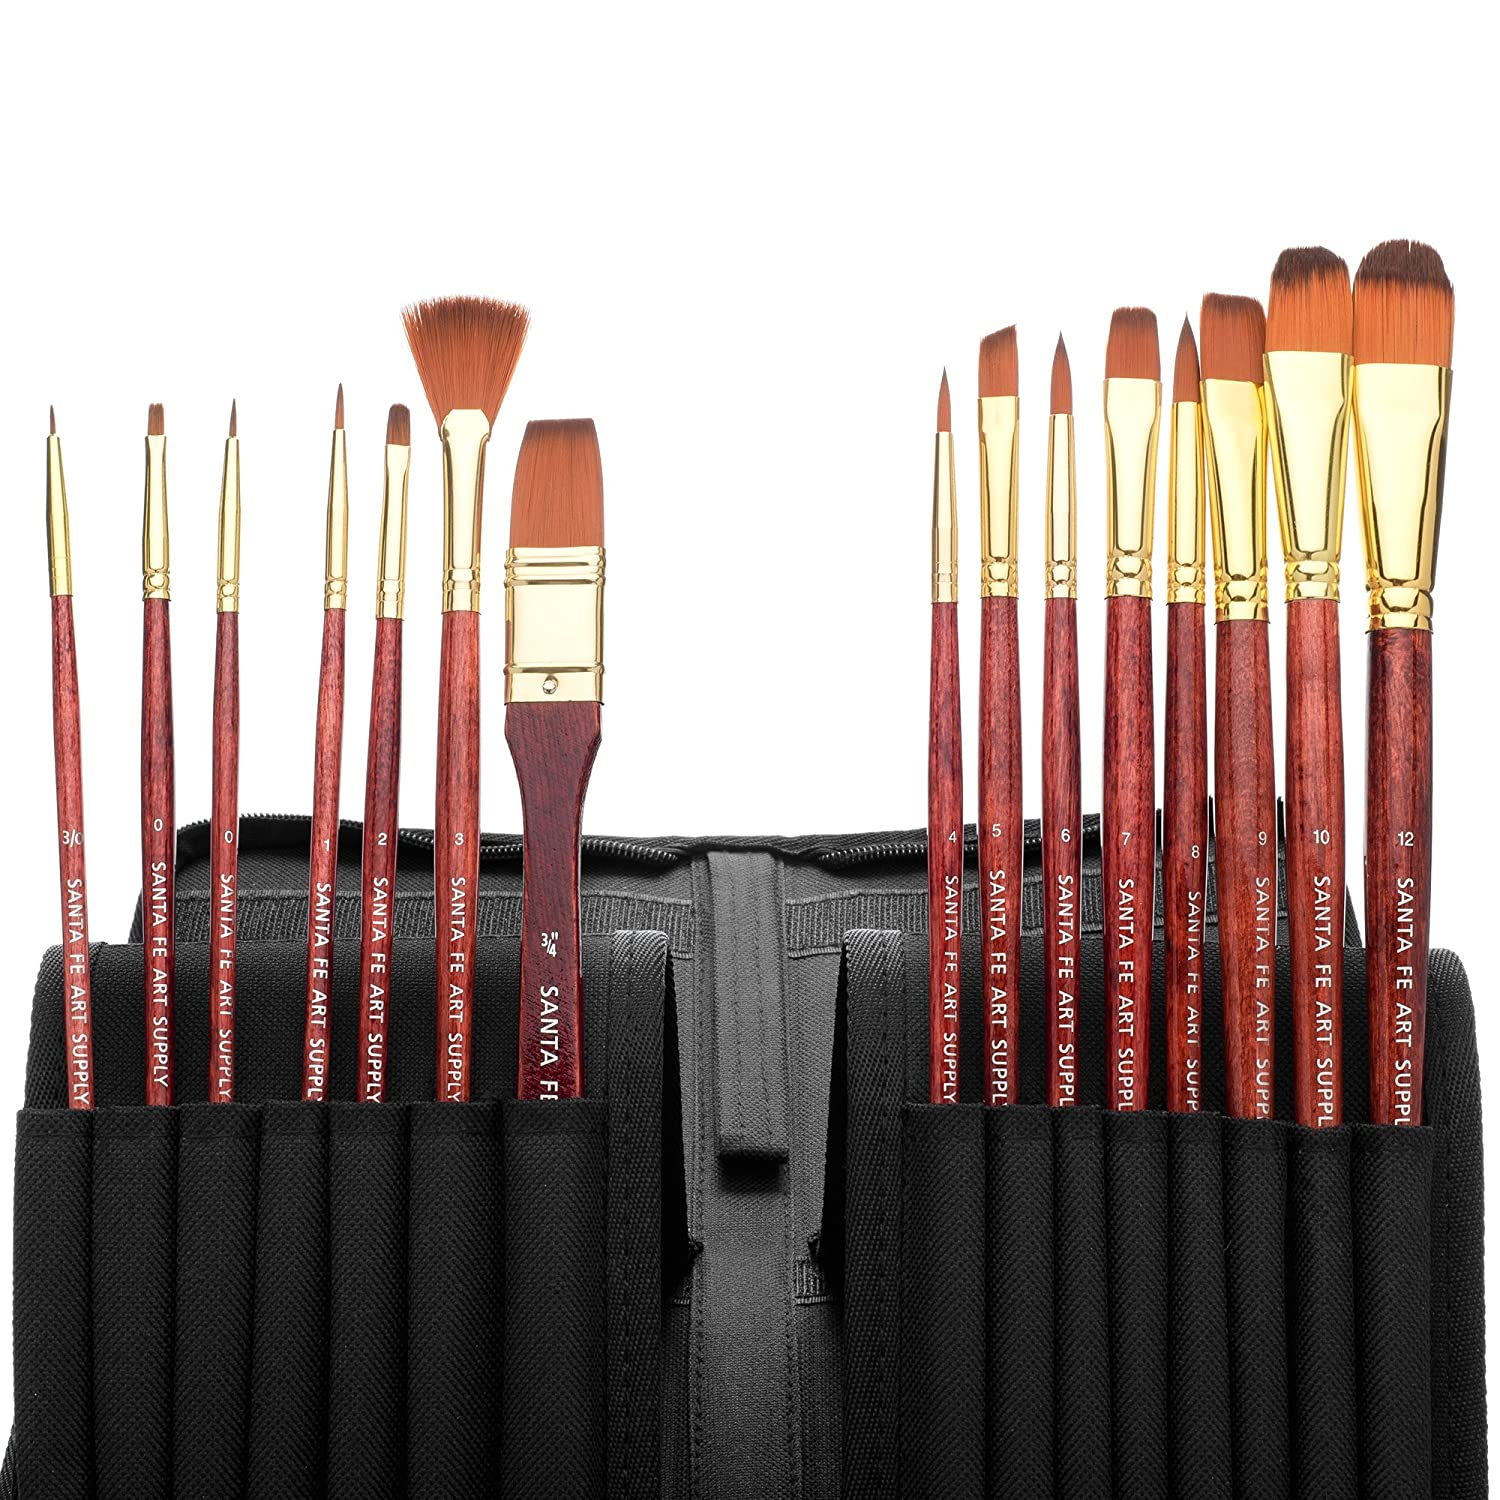 Best artist paint brushes 2016 2017 editor 39 s top 5 for Best paint brush brands